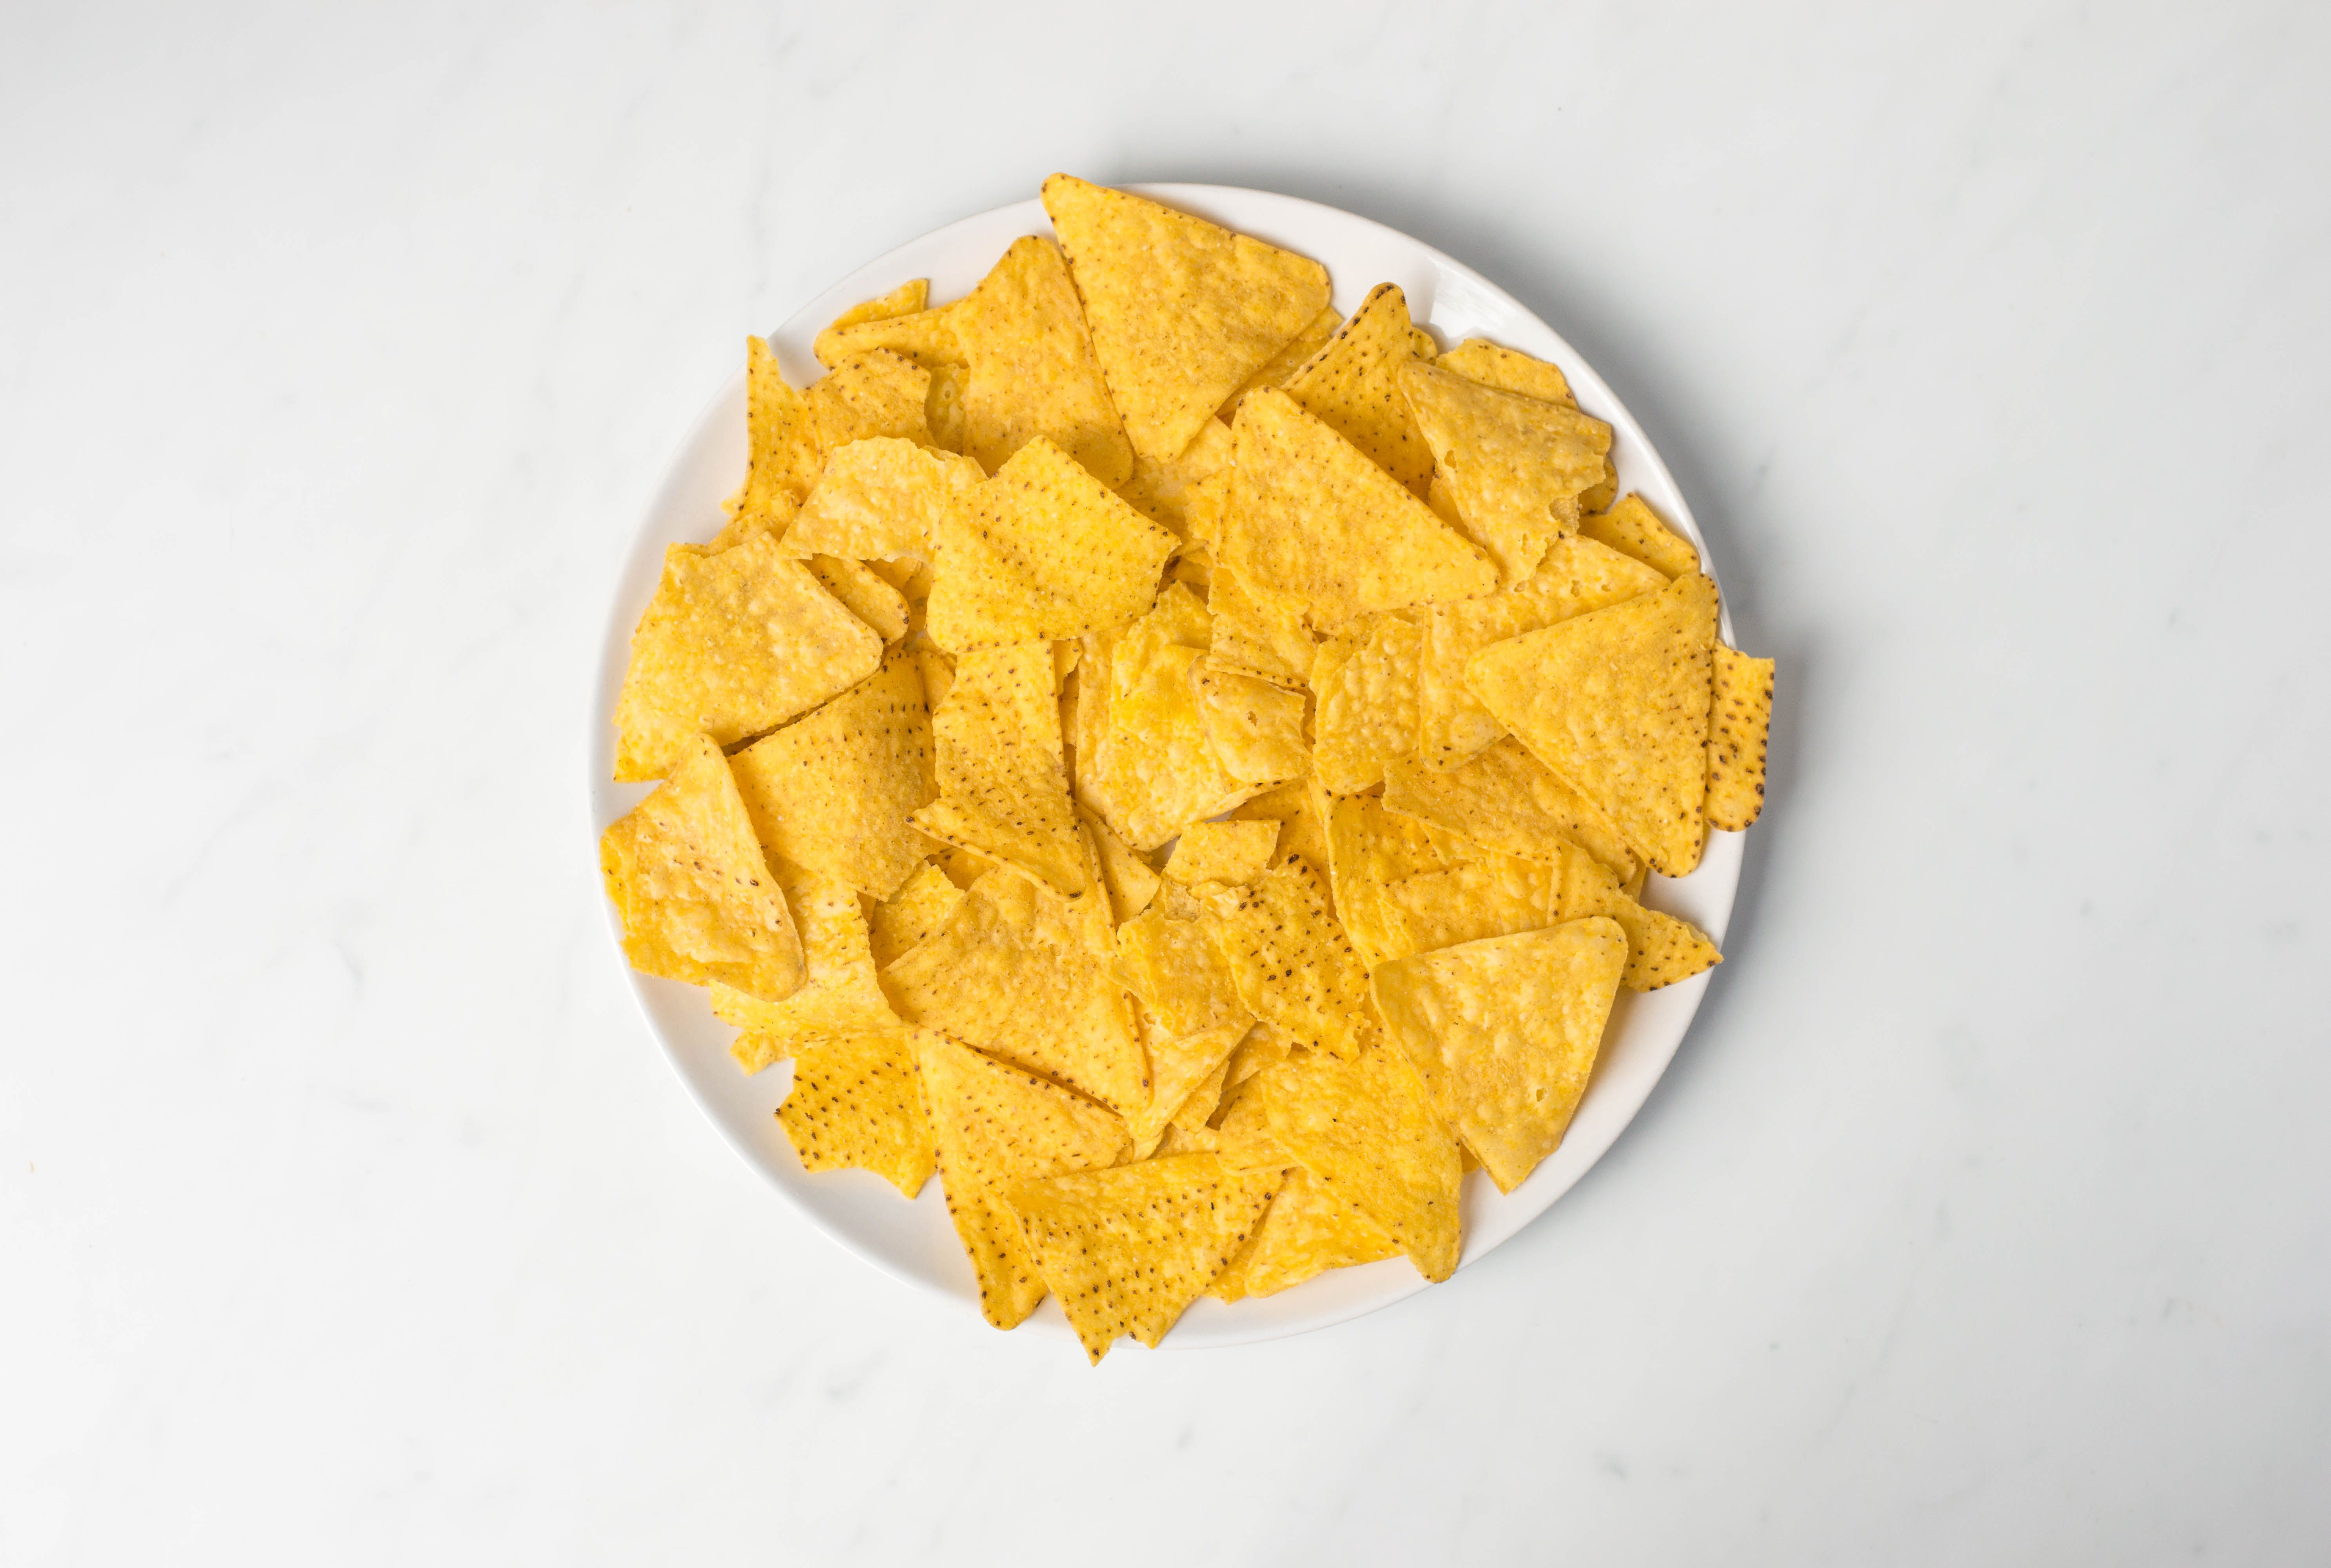 Tortilla chips on a microwave-safe plate